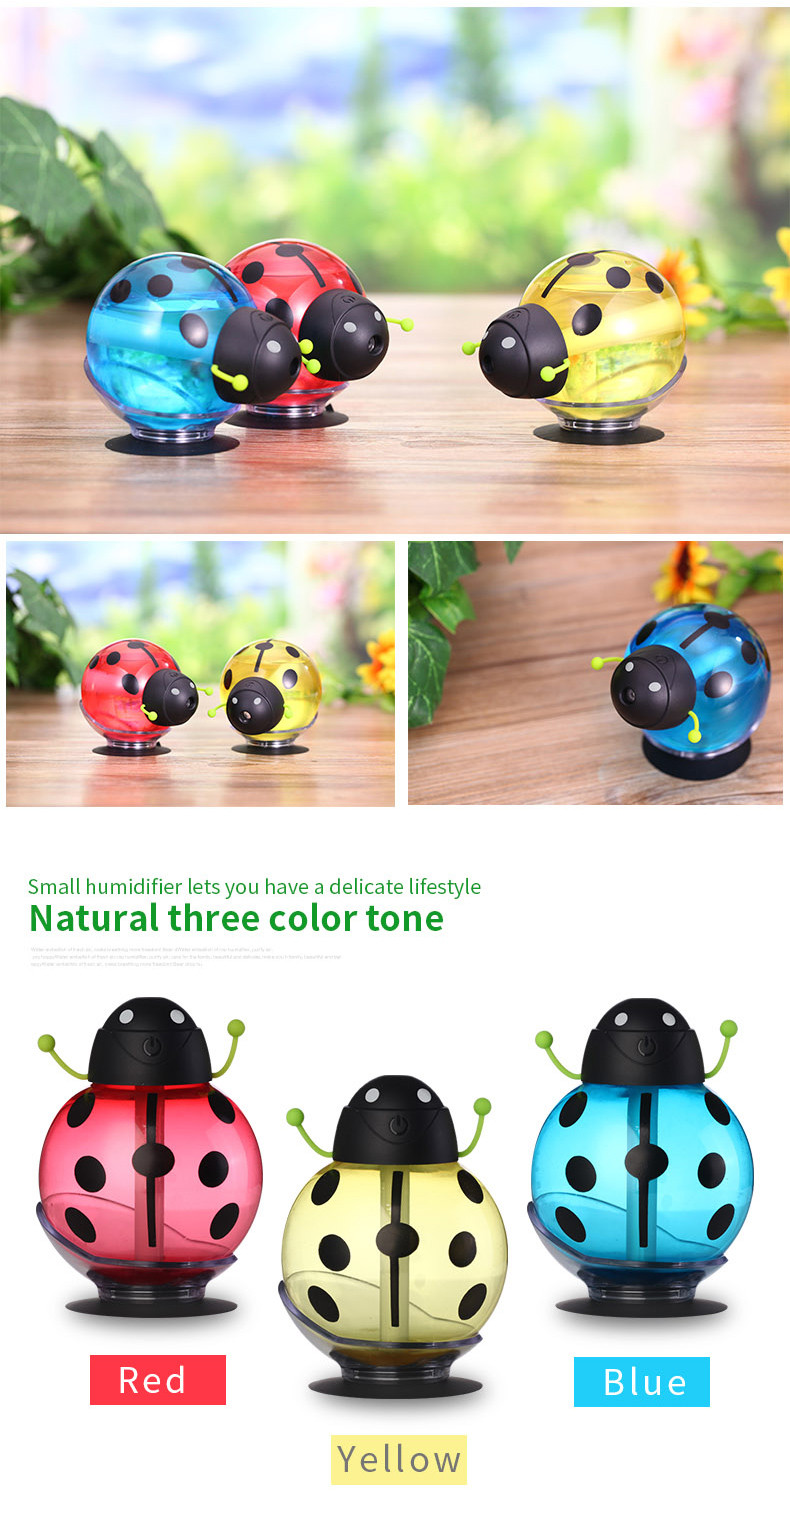 Beetle humidifier USB Humidifier Aroma diffuser Aromatherapy Essential oil diffuser Mini Portable Mist Maker 260ml LED Night